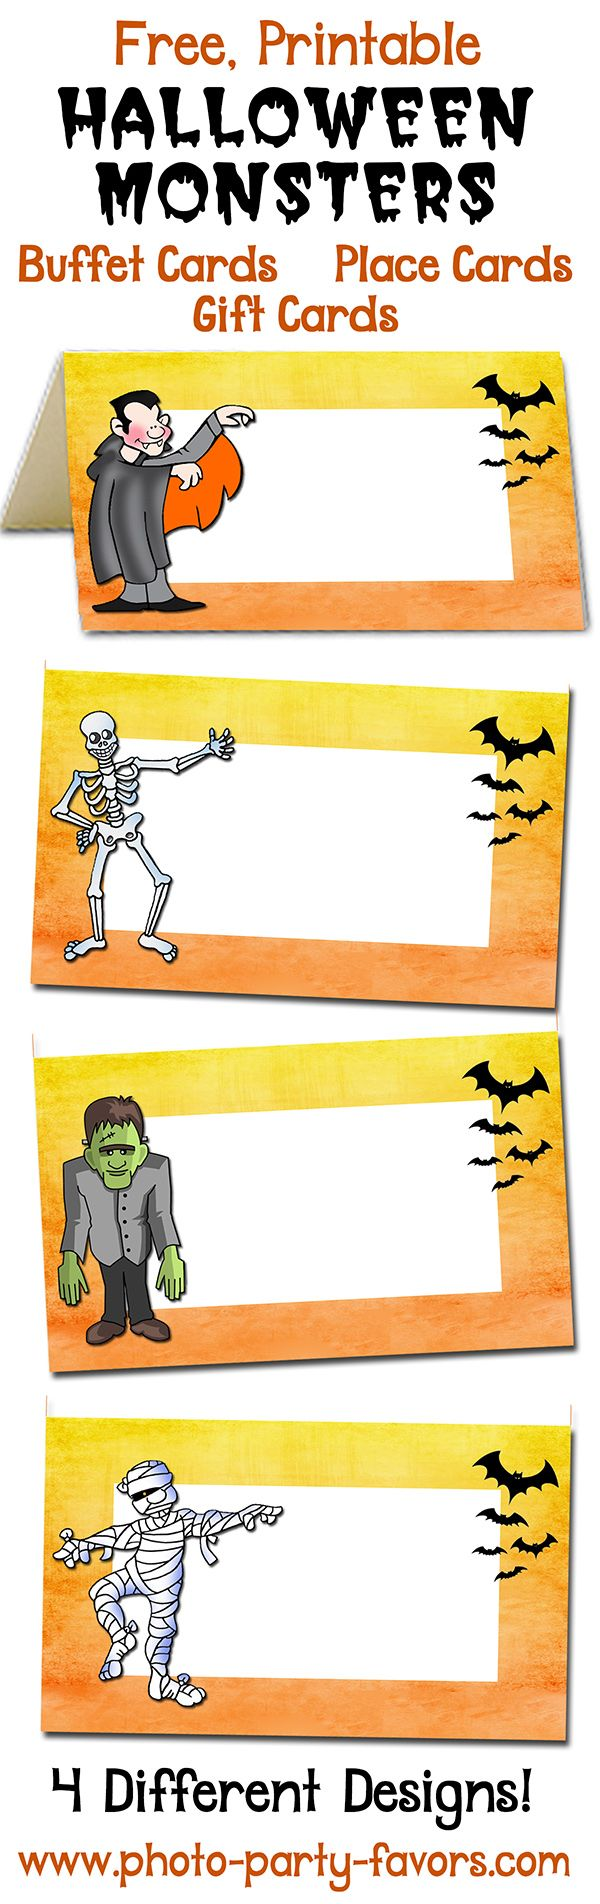 free printable monsters halloween buffet cards label your scarey halloween party food with ghoulish names - Names For A Halloween Party